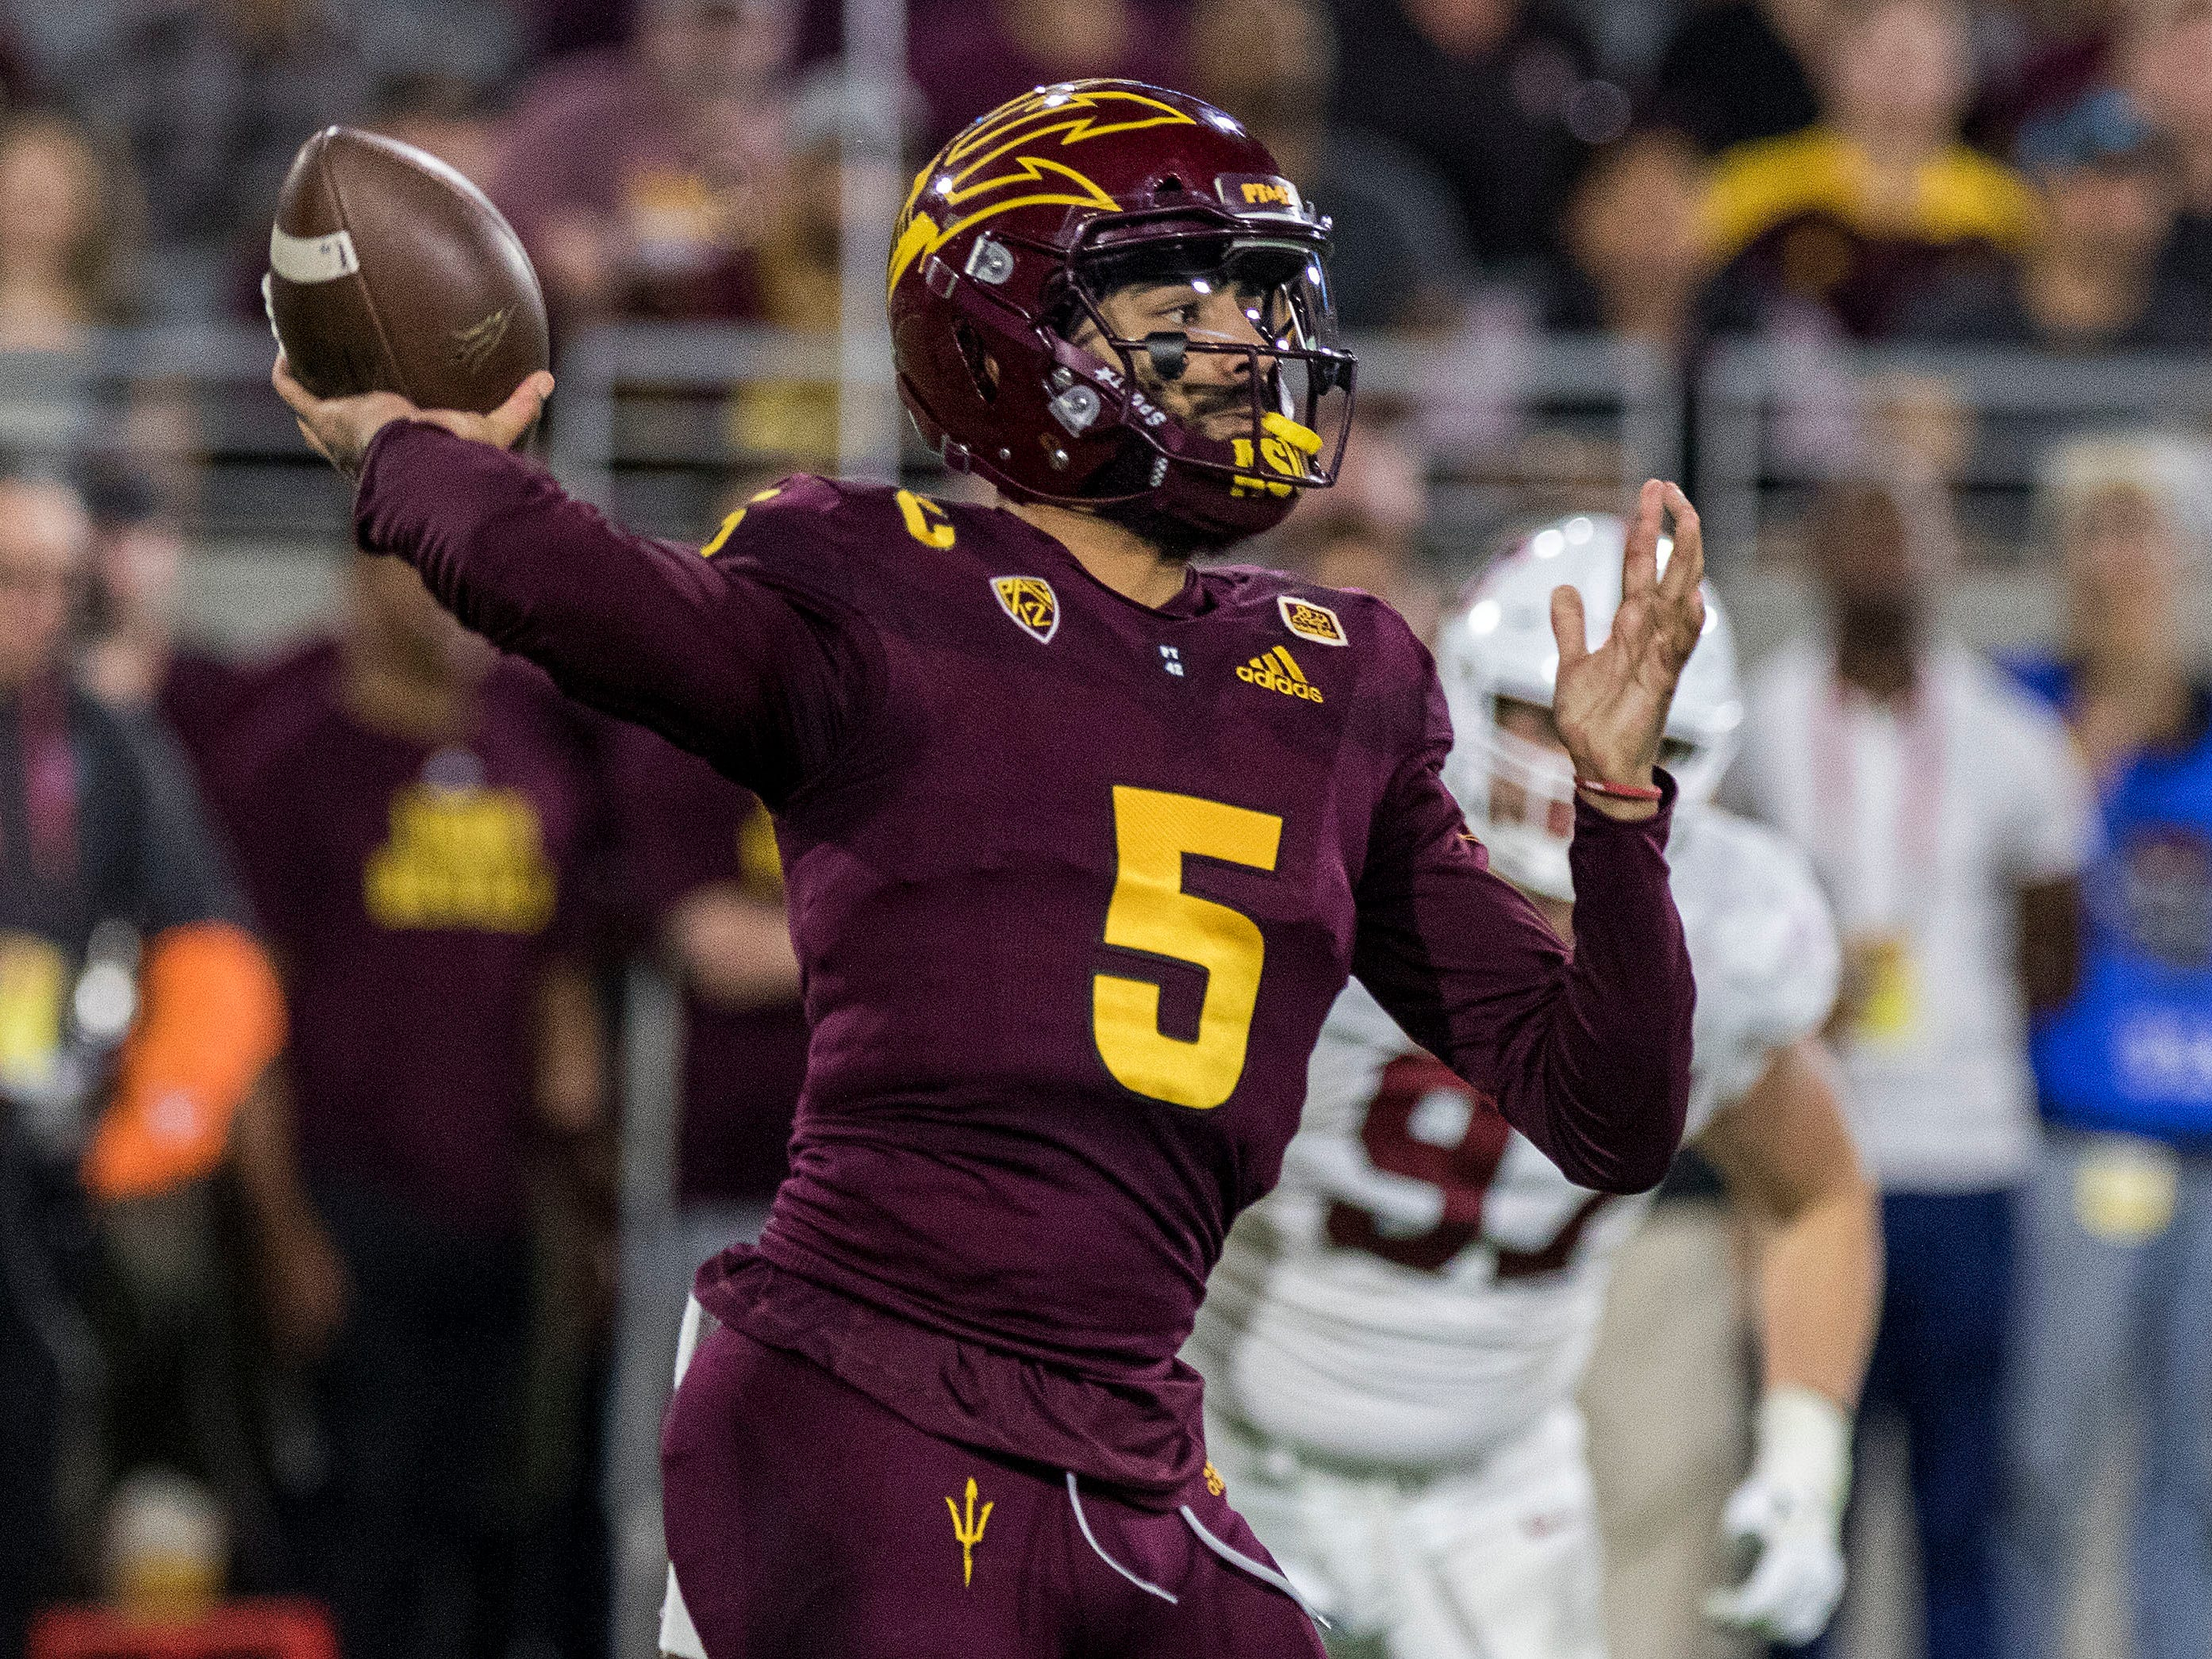 Arizona State quarterback Manny Wilkins throws a pass against the Stanford defense during the first half of an NCAA college football game Thursday, Oct. 18, 2018, in Tempe, Ariz.